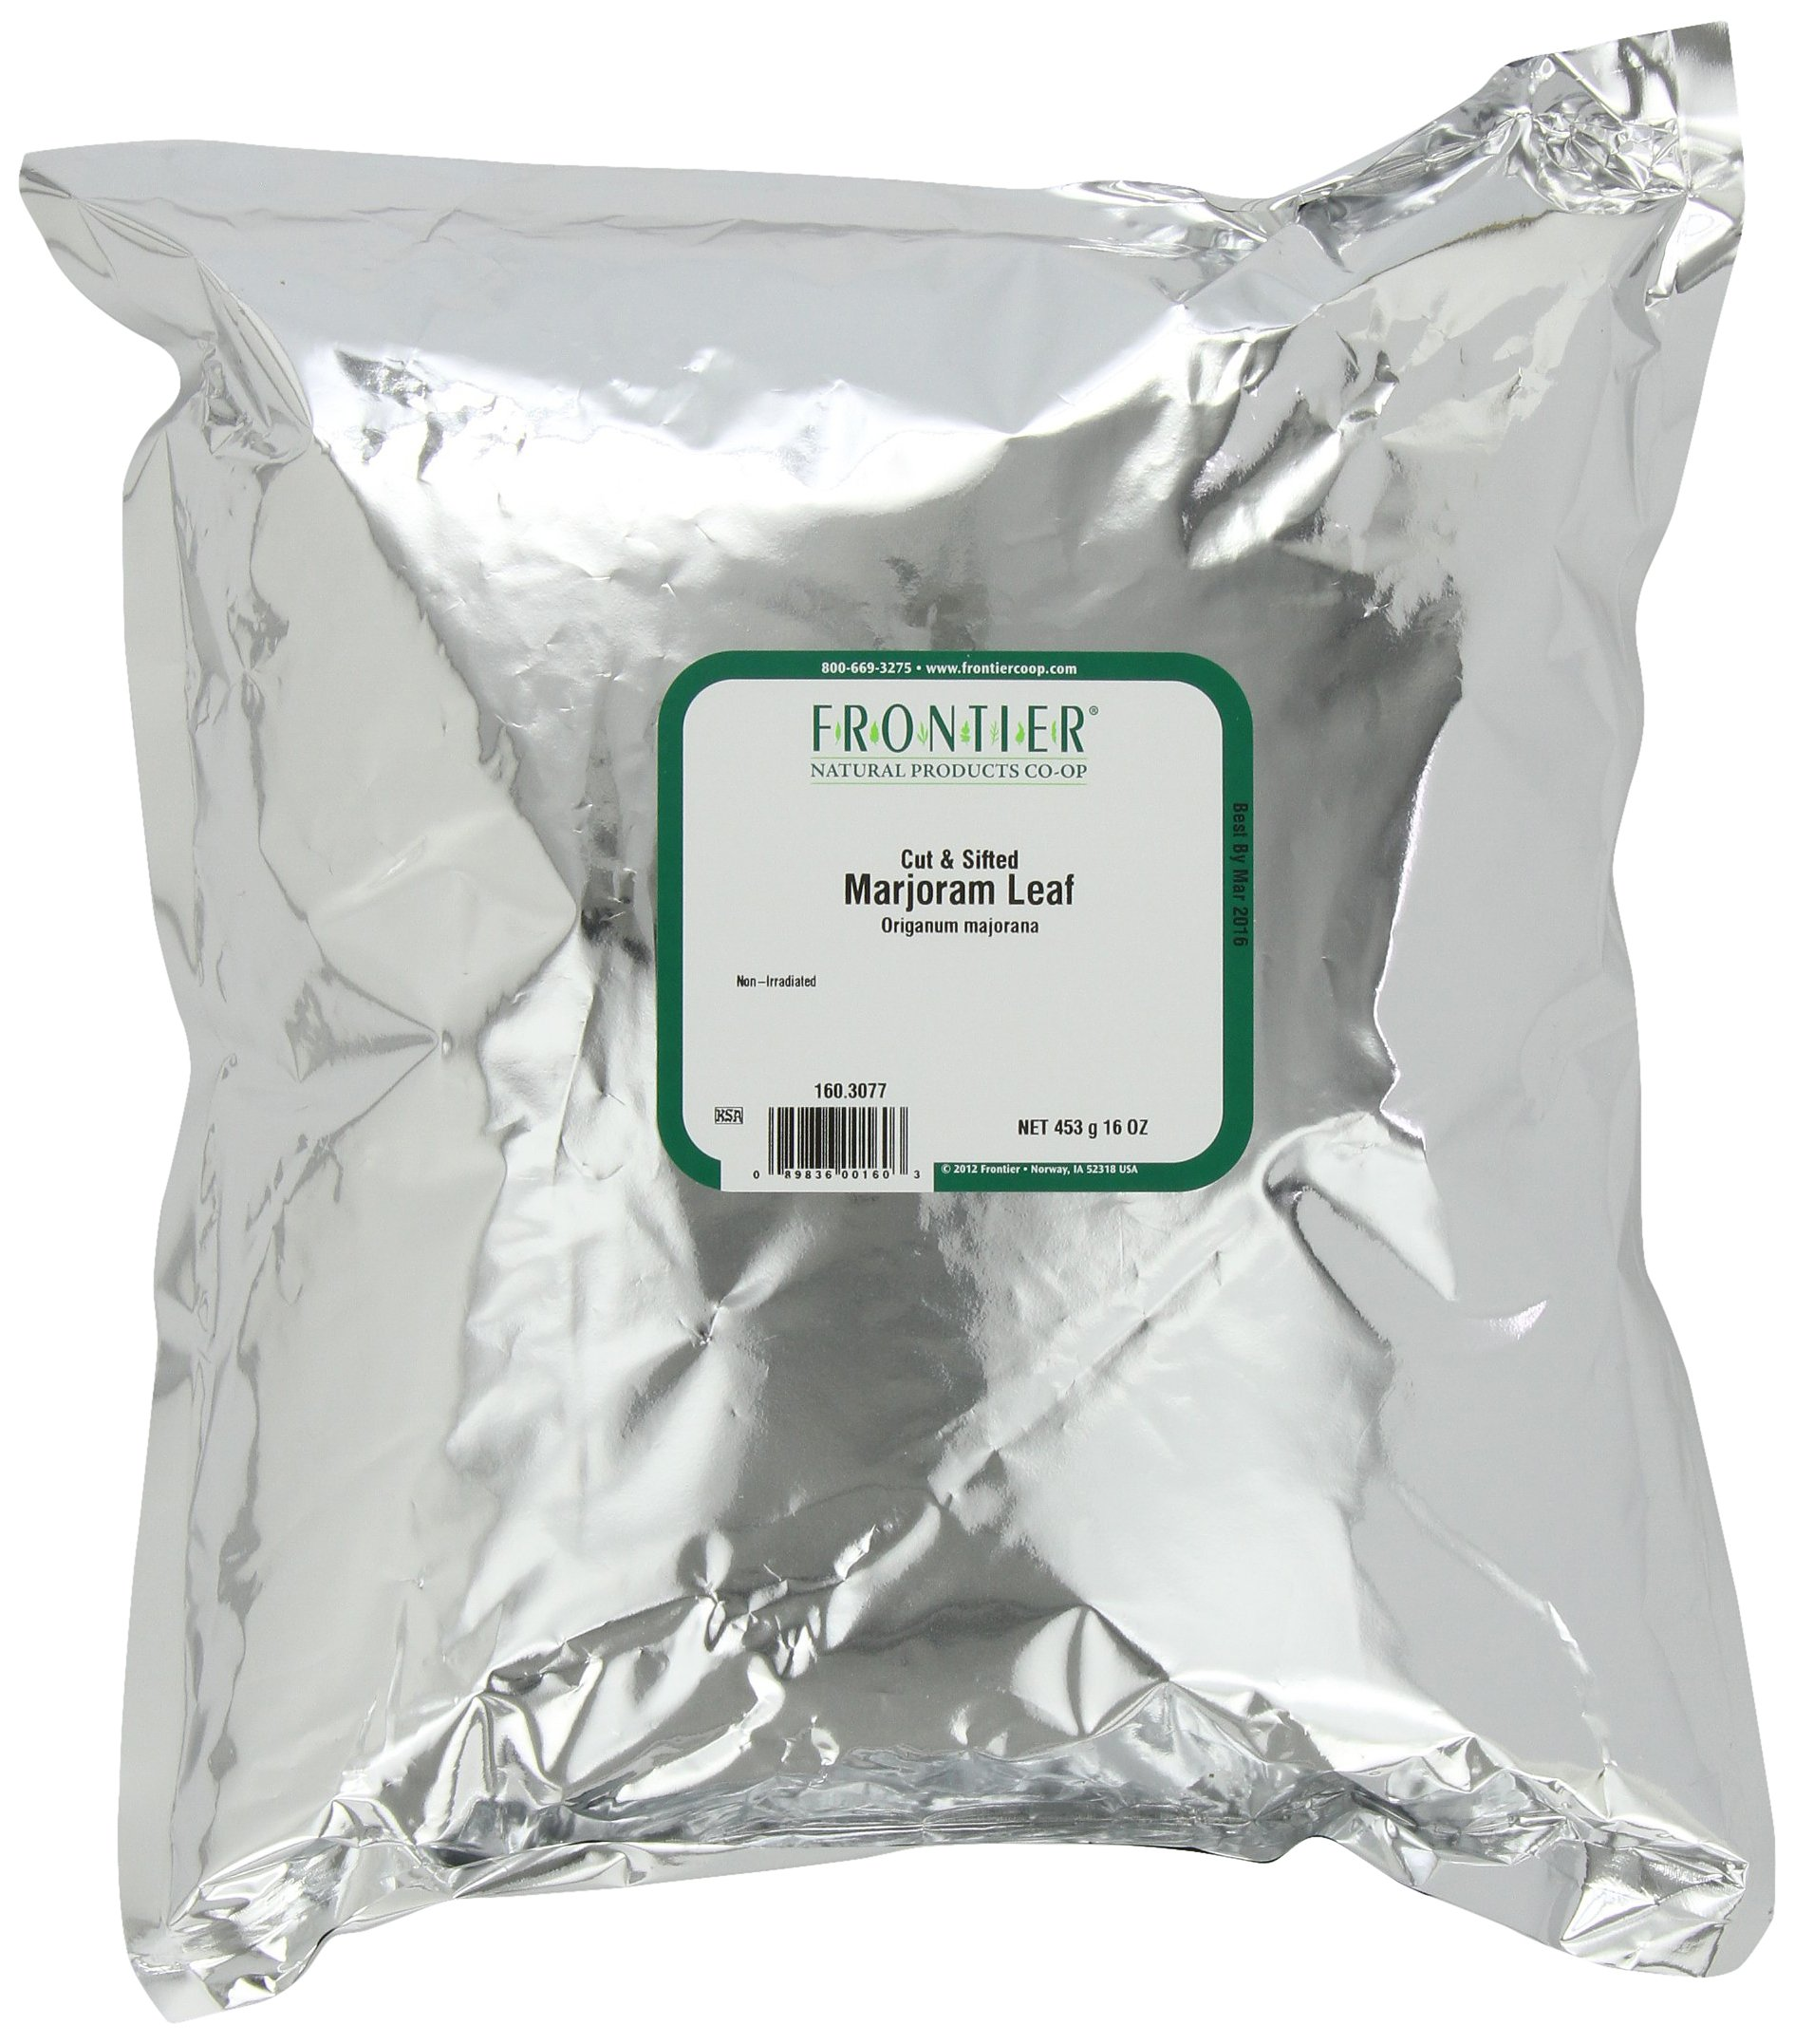 Frontier Marjoram Leaf C/s, 16 Ounce Bags (Pack of 2)